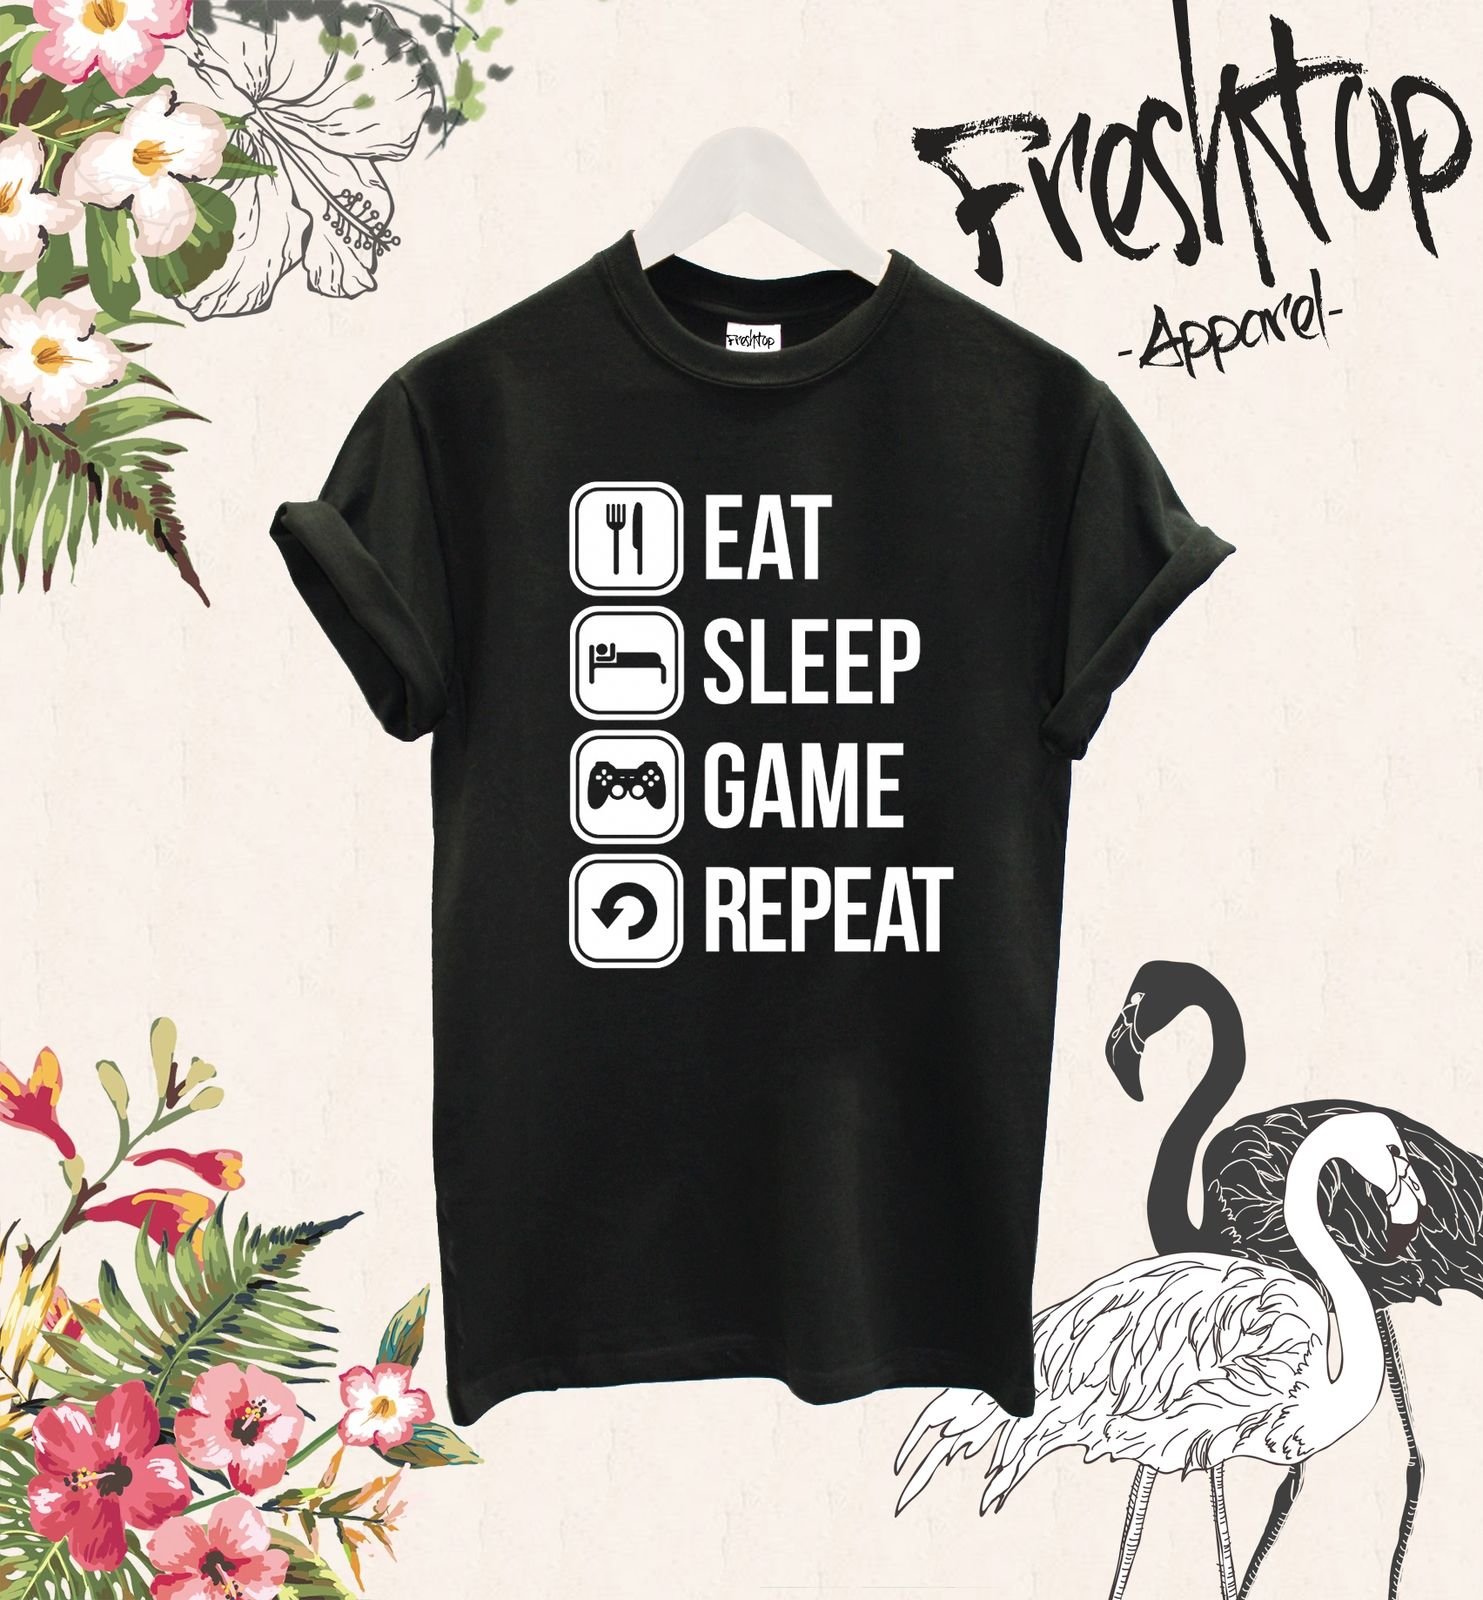 Eat Sleep Game Repeat T Shirt Twitch Youtube Gamer Play CS Go MMO RPG Gameboy Summer 2019 Short Sleeve Plus Size T-shirts image